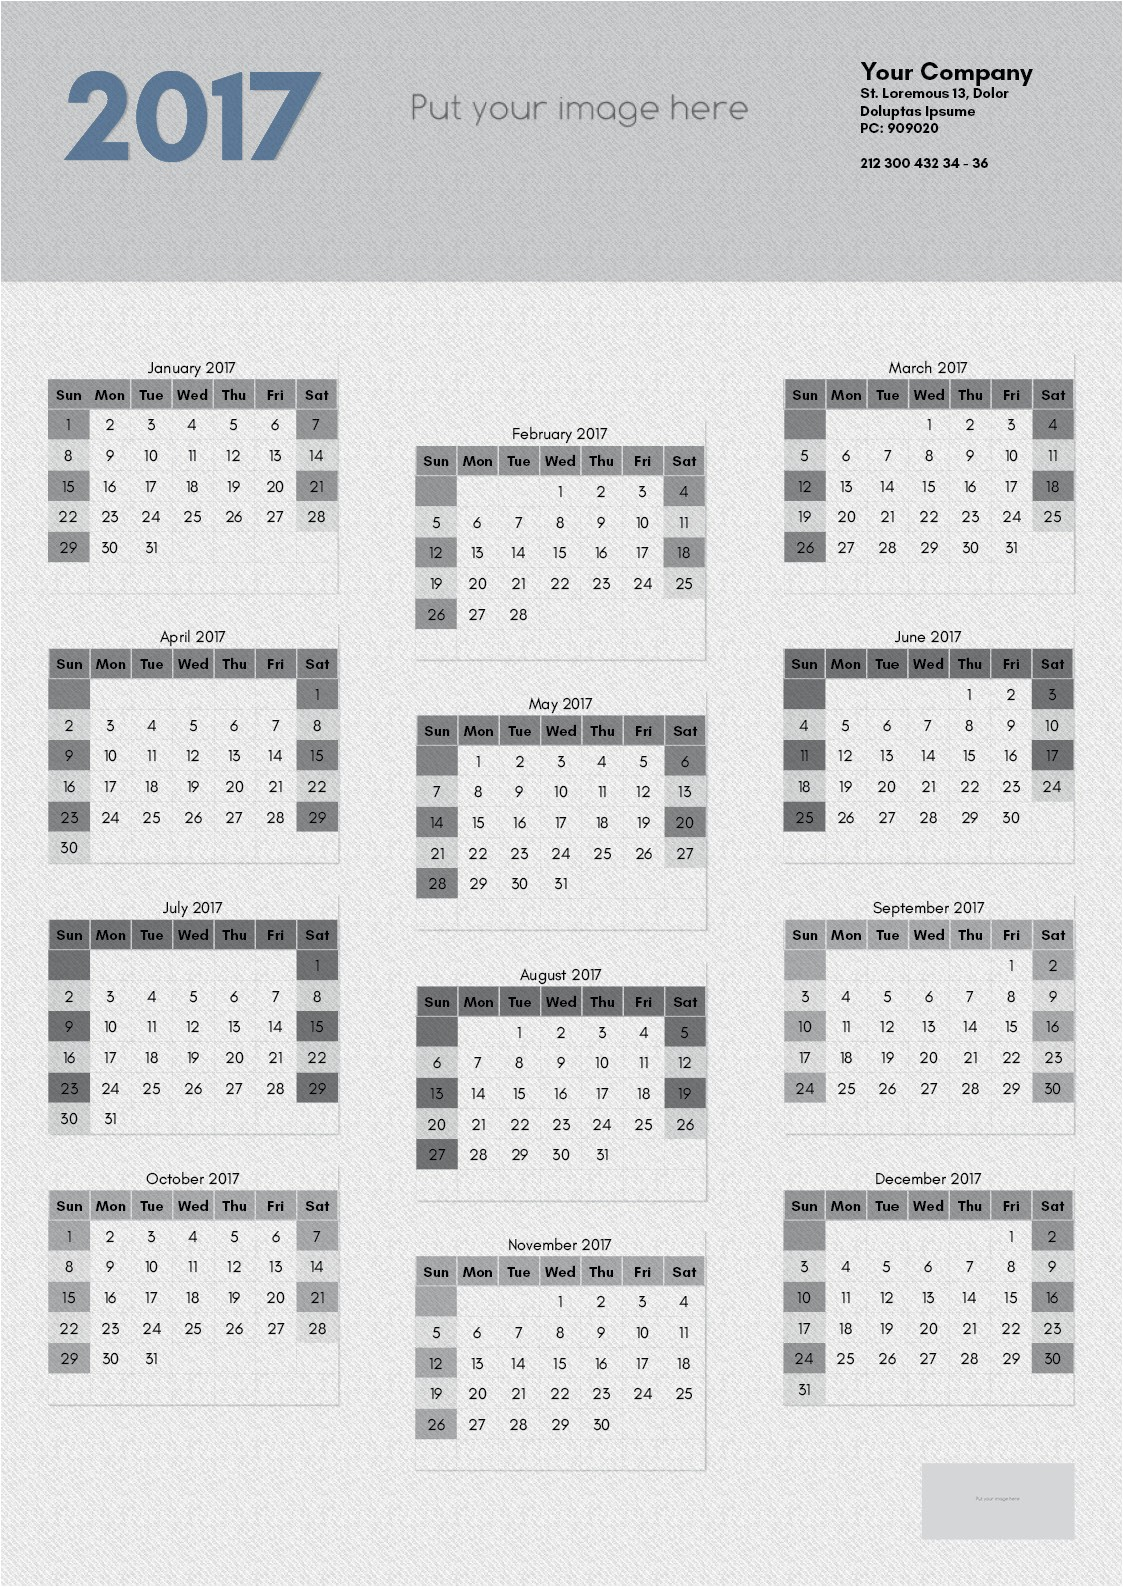 2017 calendar template indesign